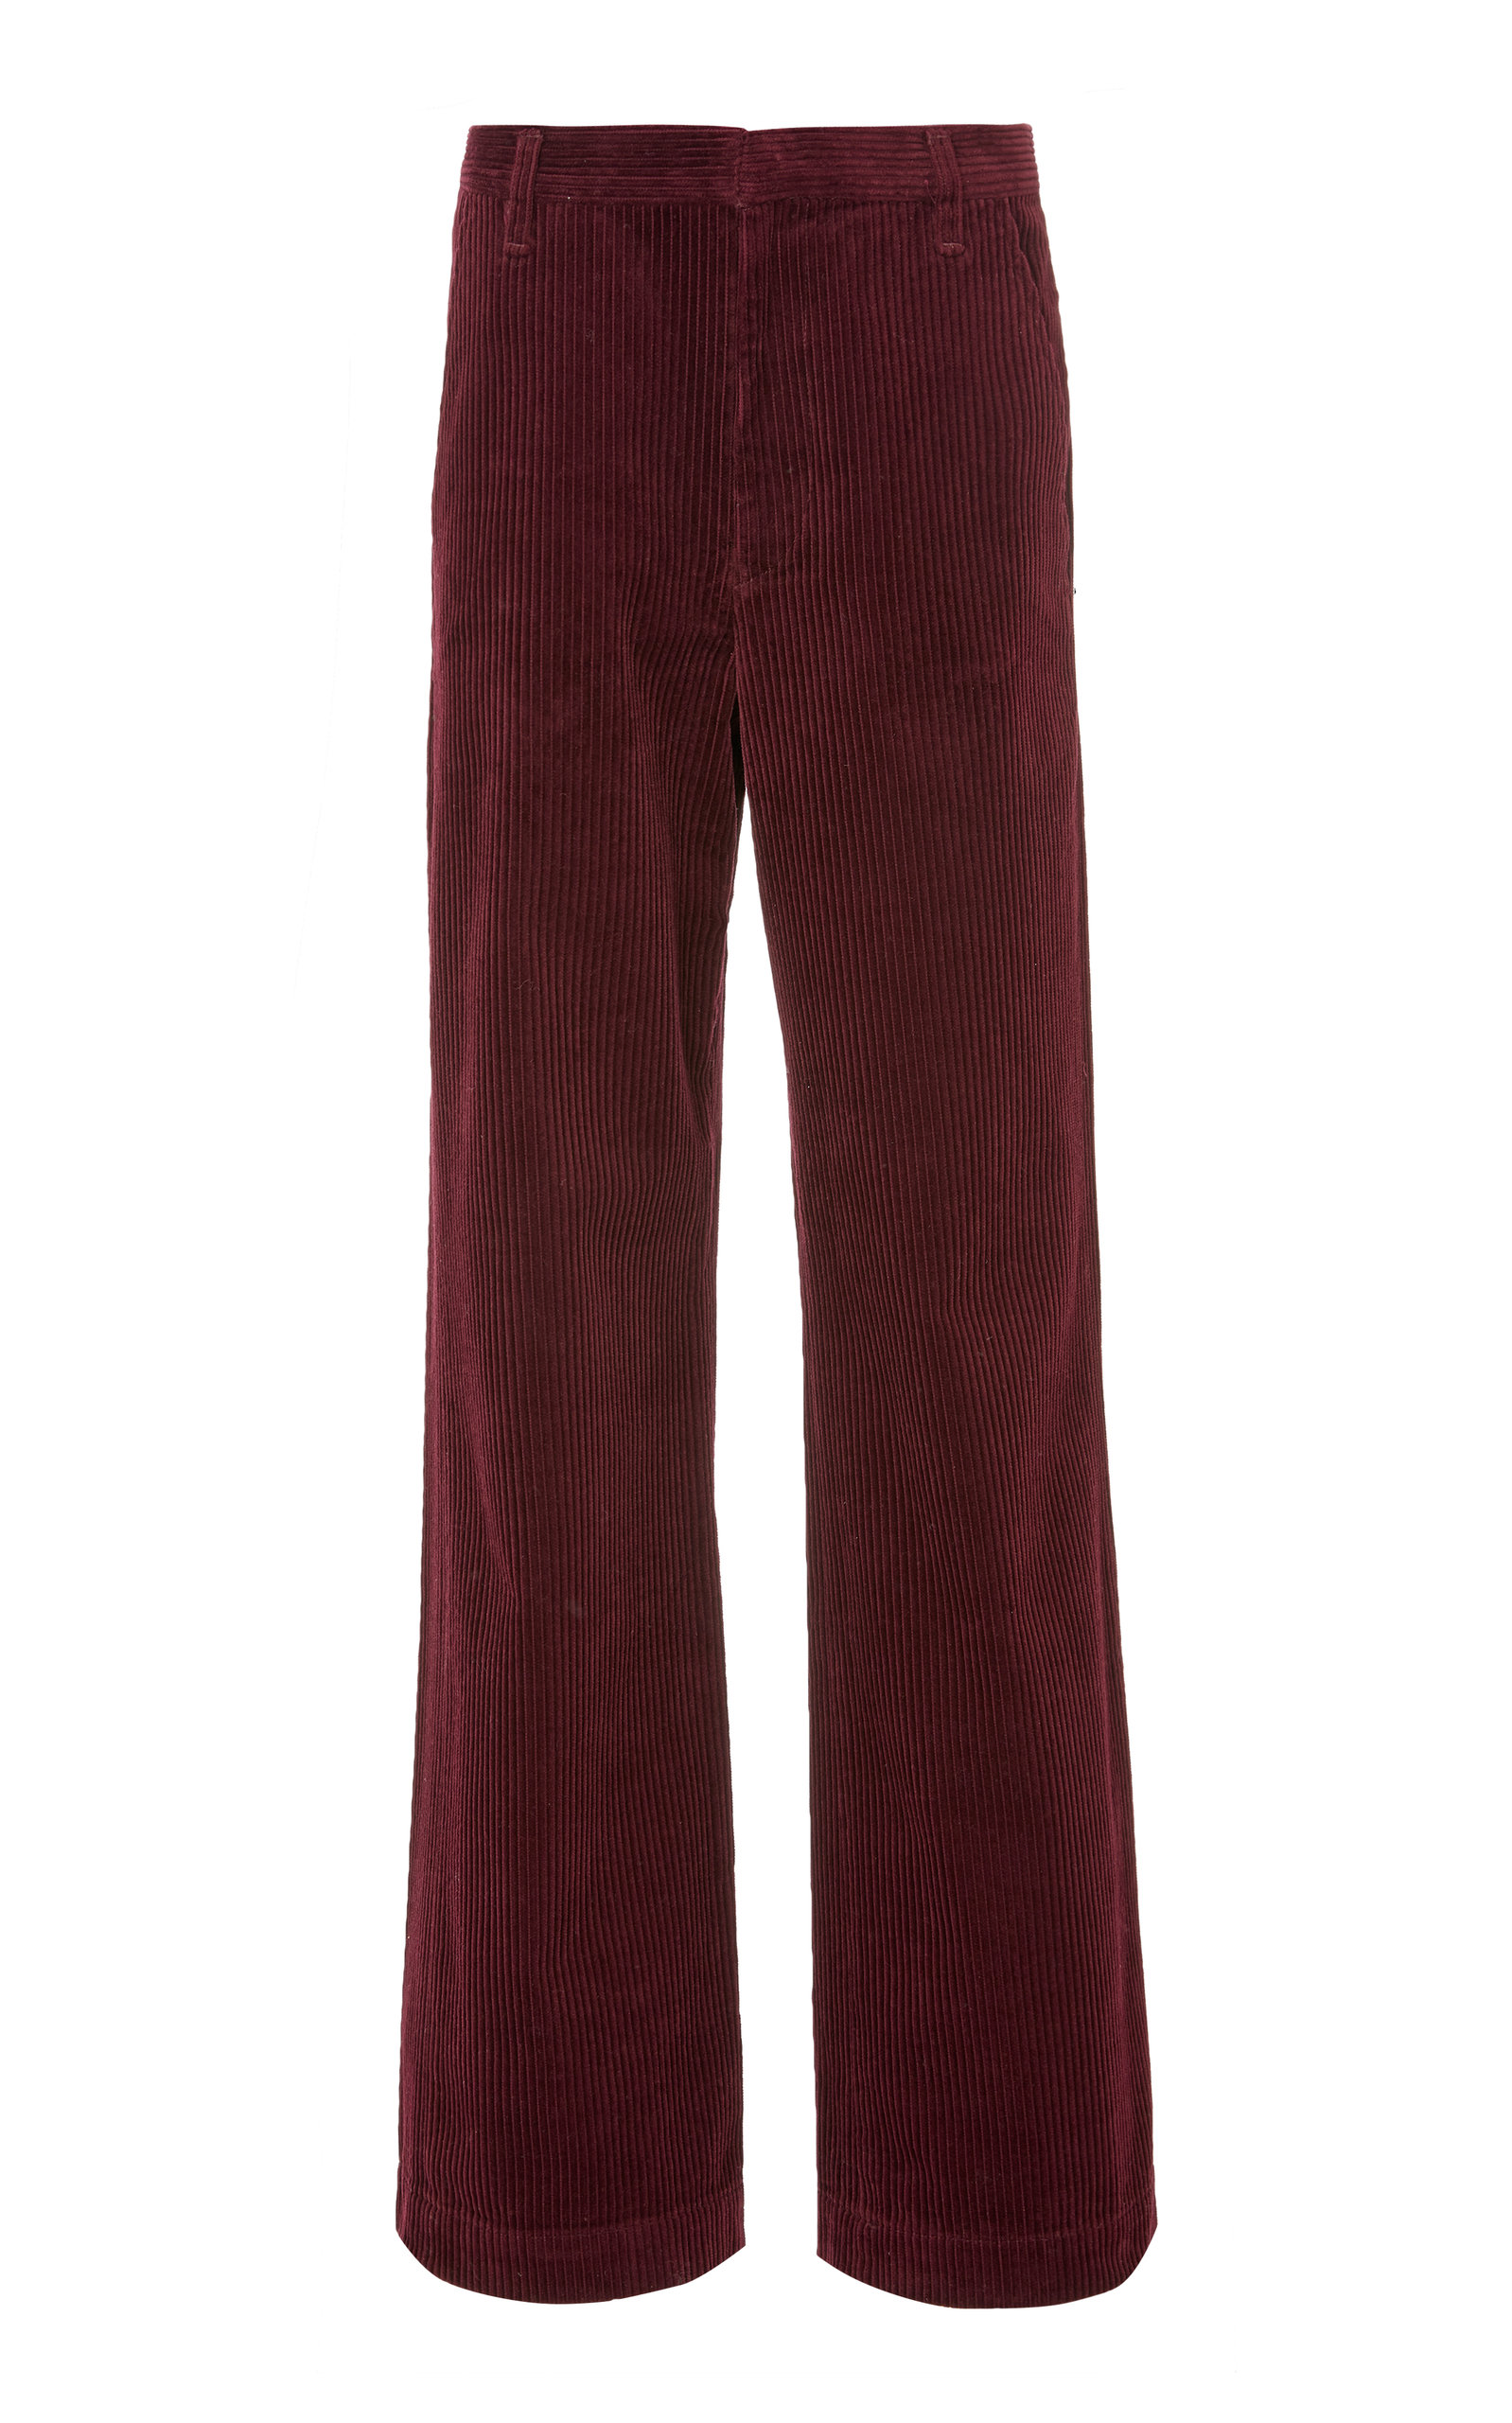 GOLDSIGN CORDUROY FLAT FRONT TROUSERS